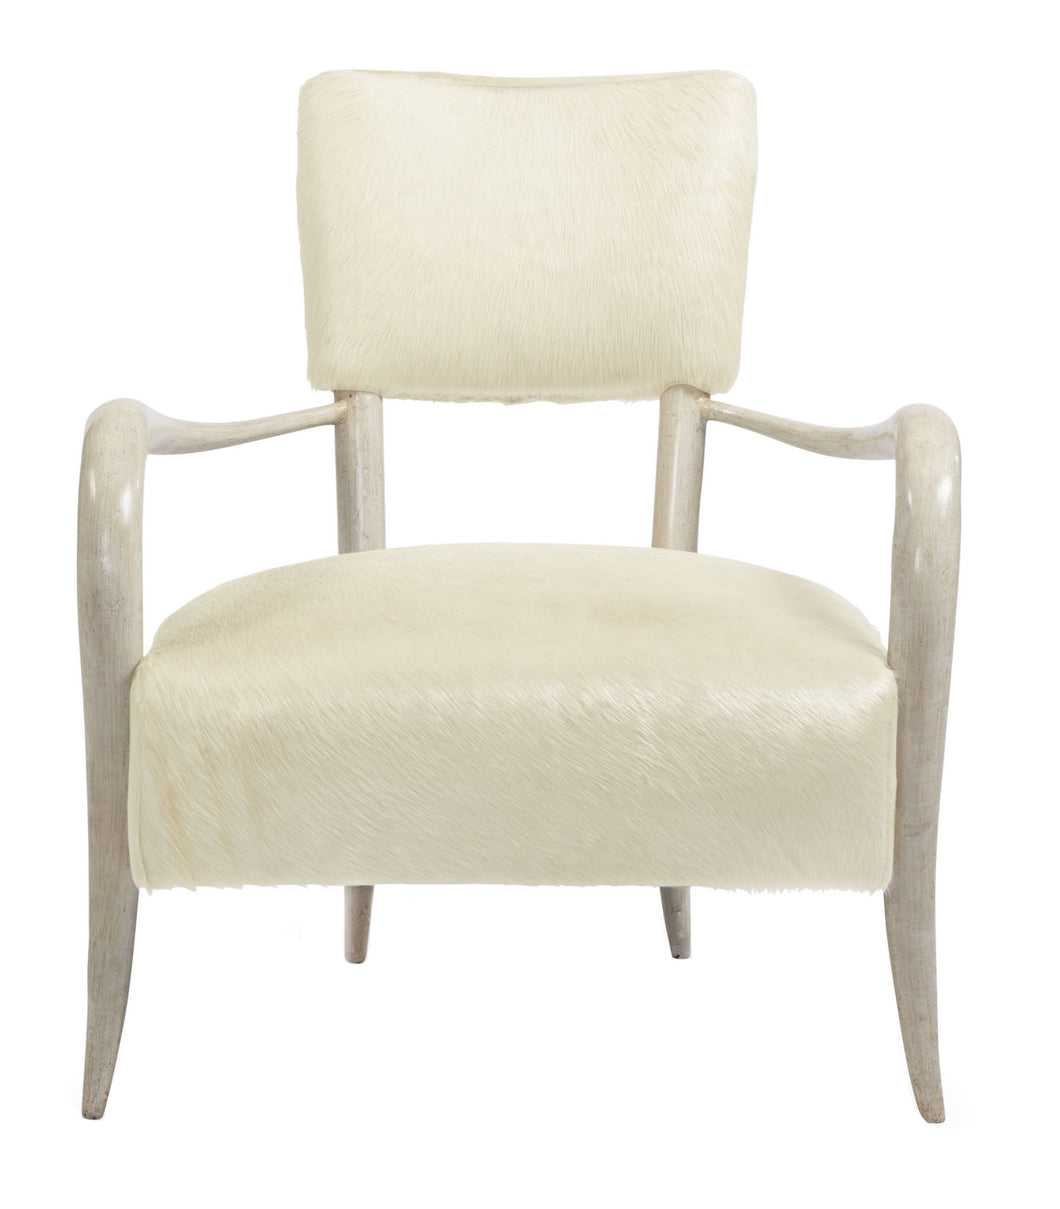 Wooden Arm and Leg Chair, Home Furnishings, Laura of Pembroke